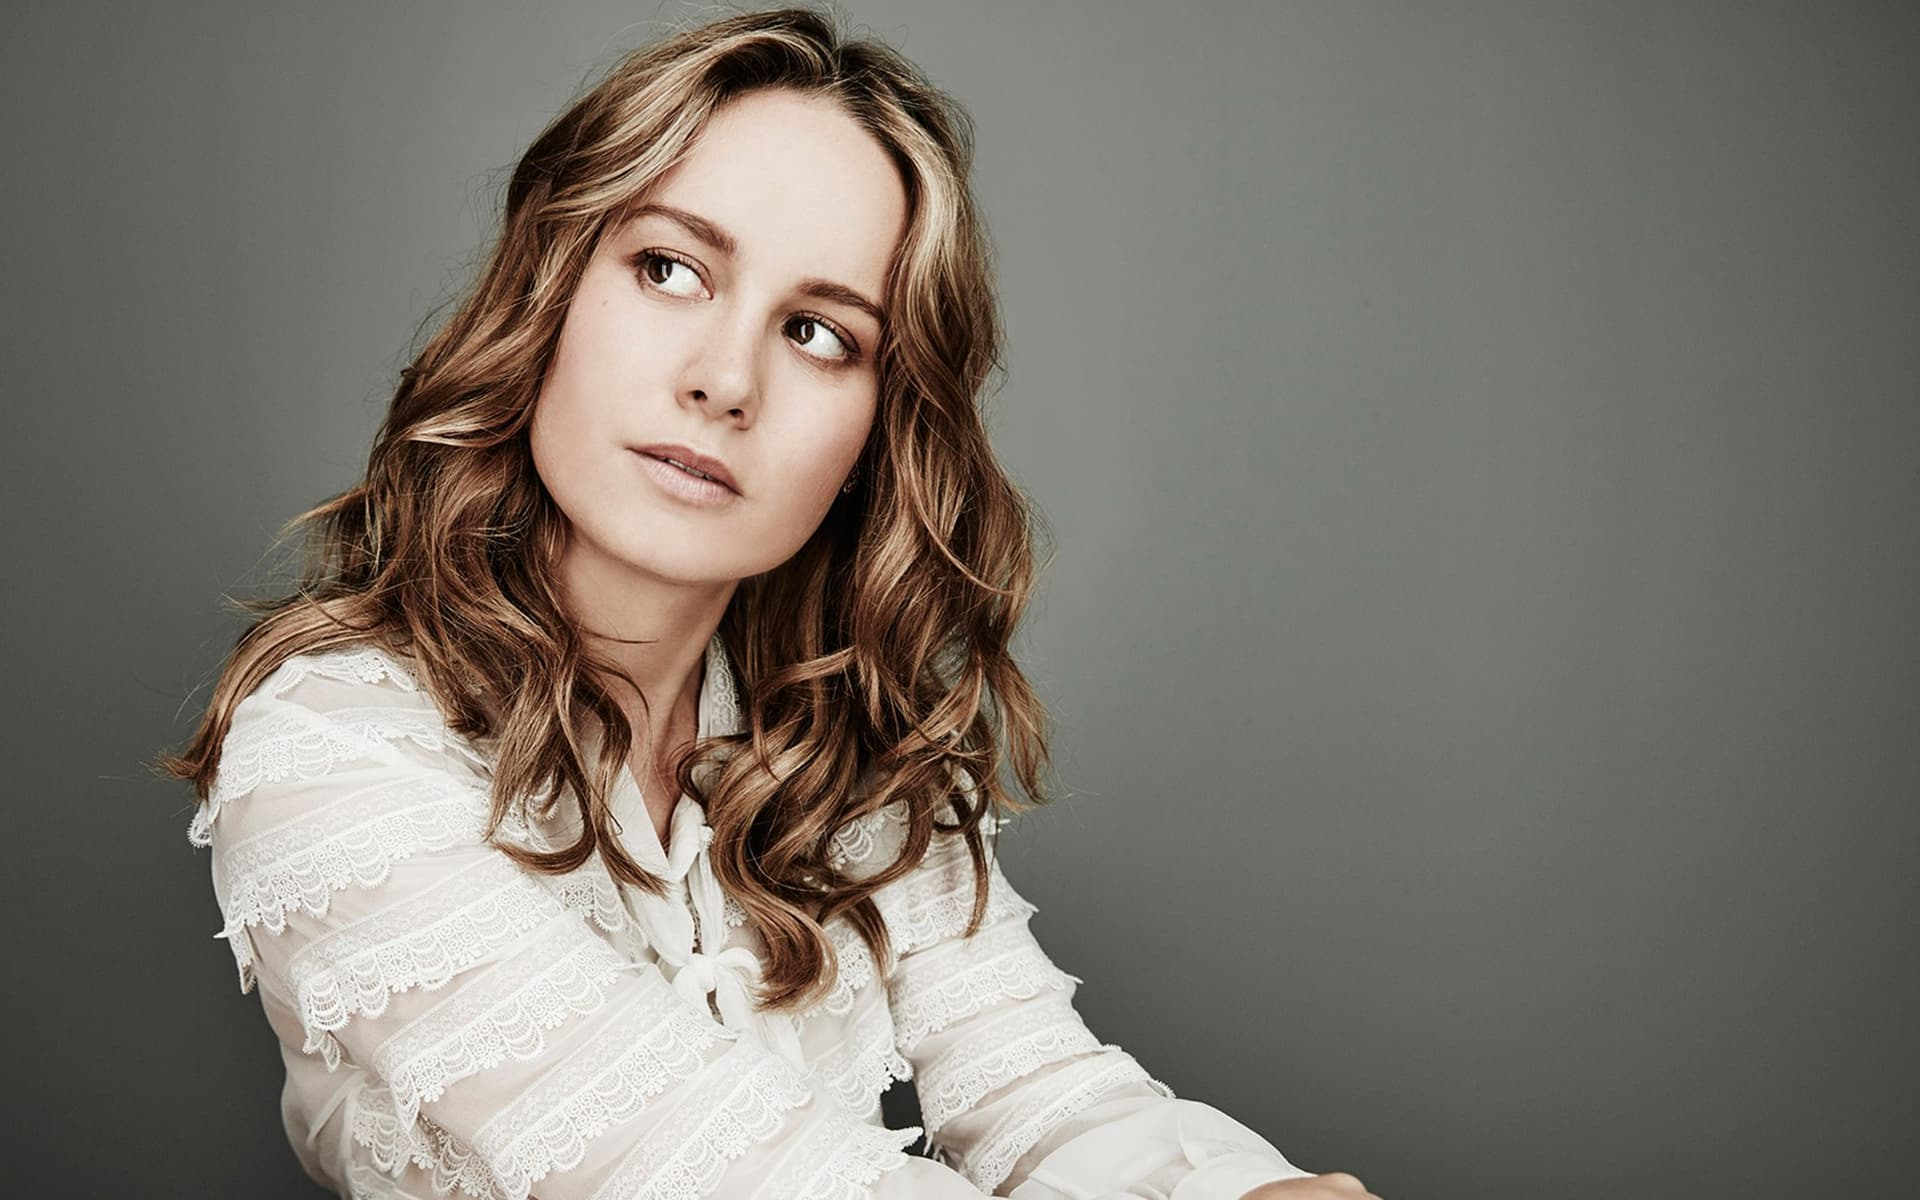 33  Brie Larson Wallpapers High Quality Resolution Download